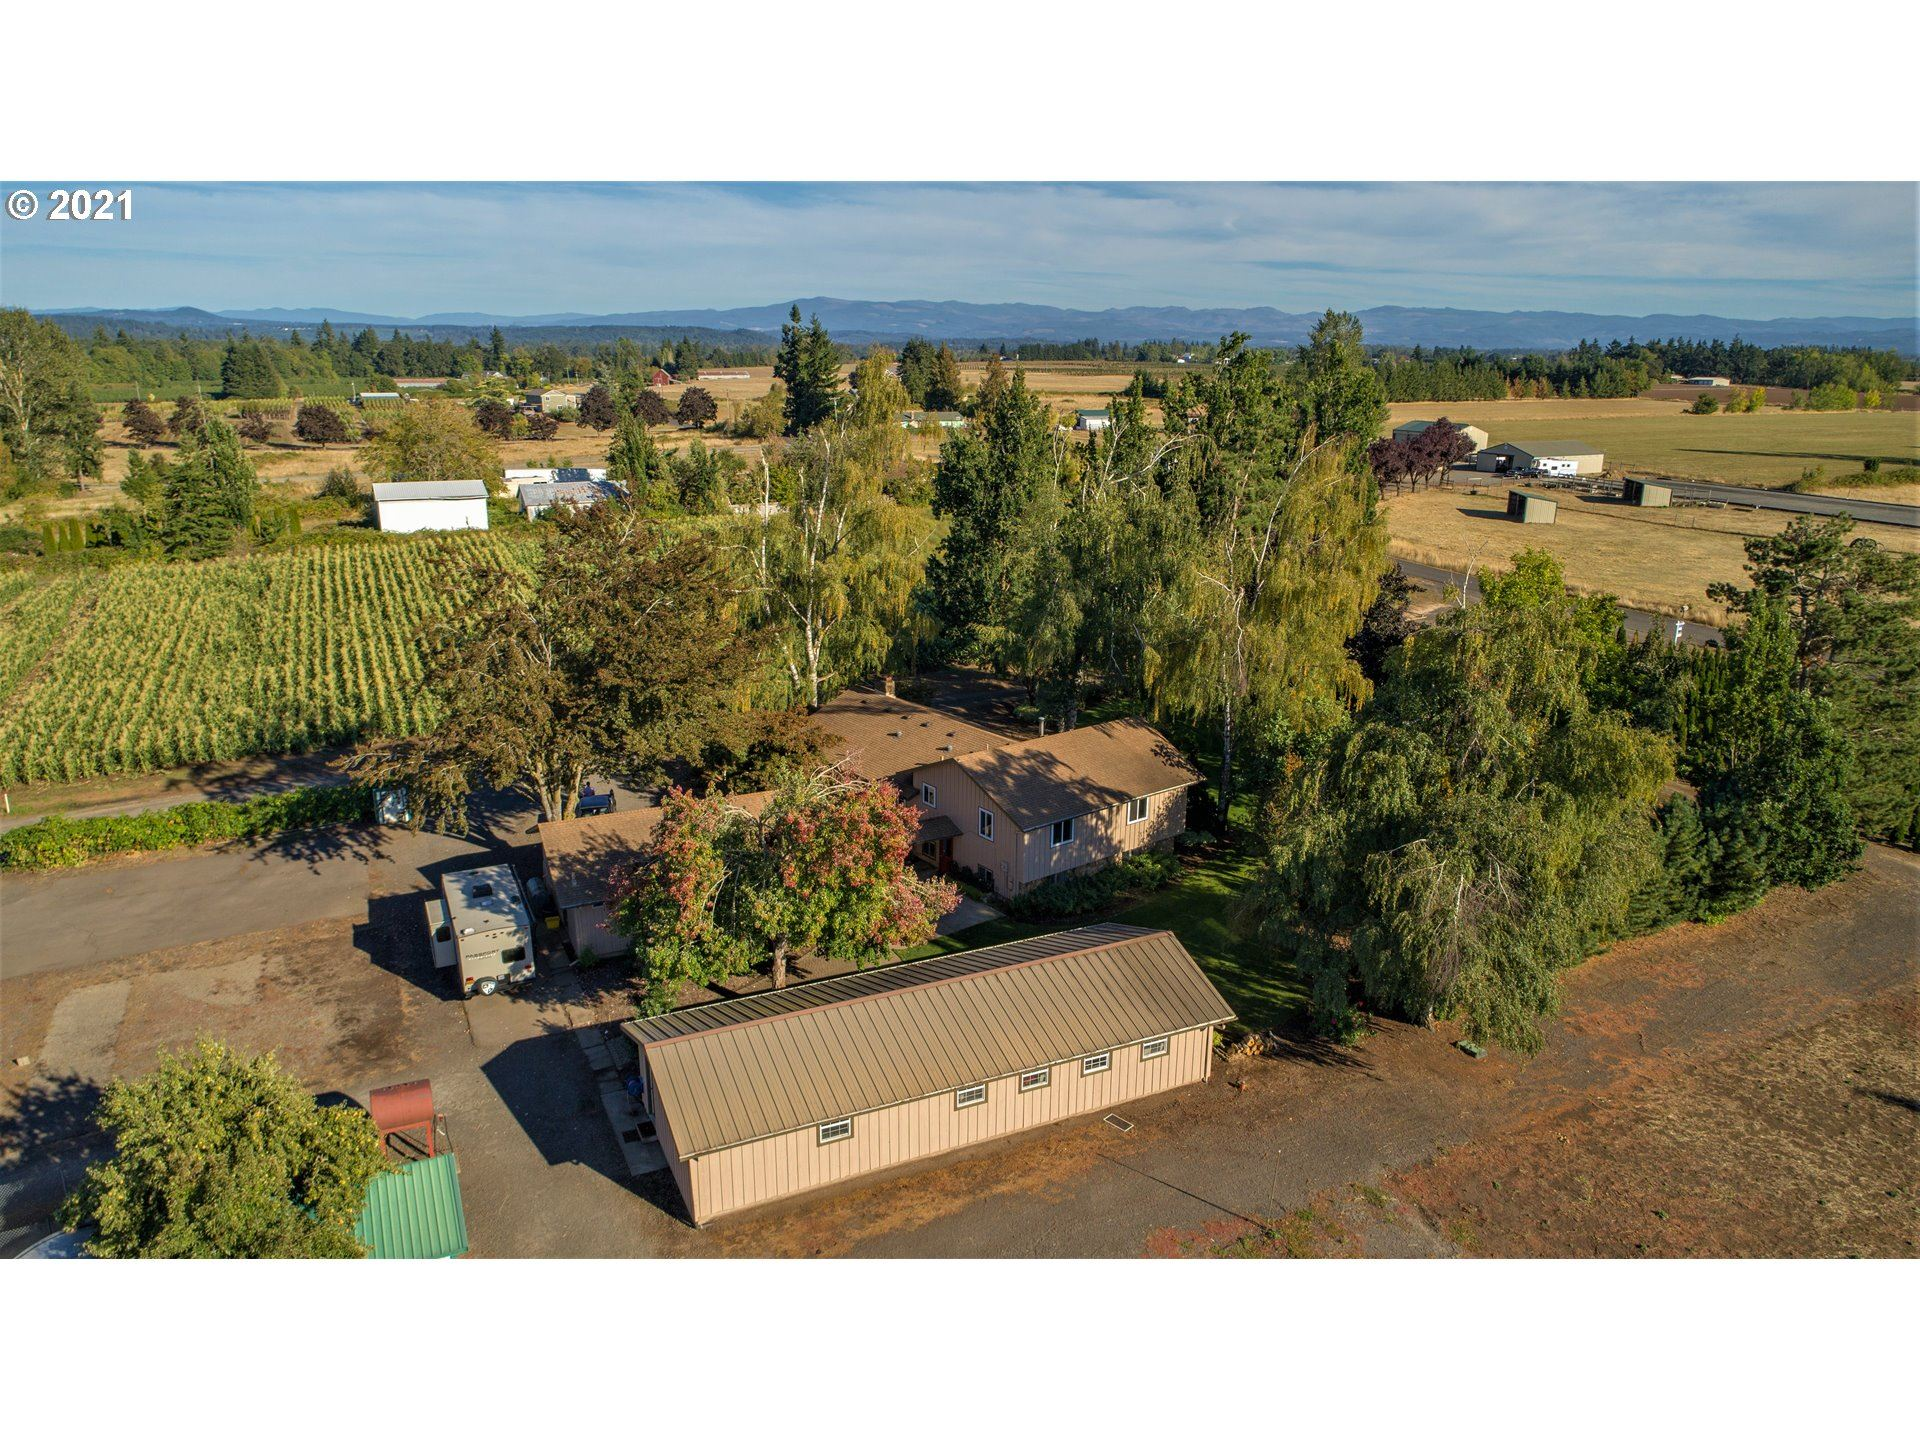 Photo of 10107 S KRAXBERGER RD, Canby, OR 97013 (MLS # 21624398)